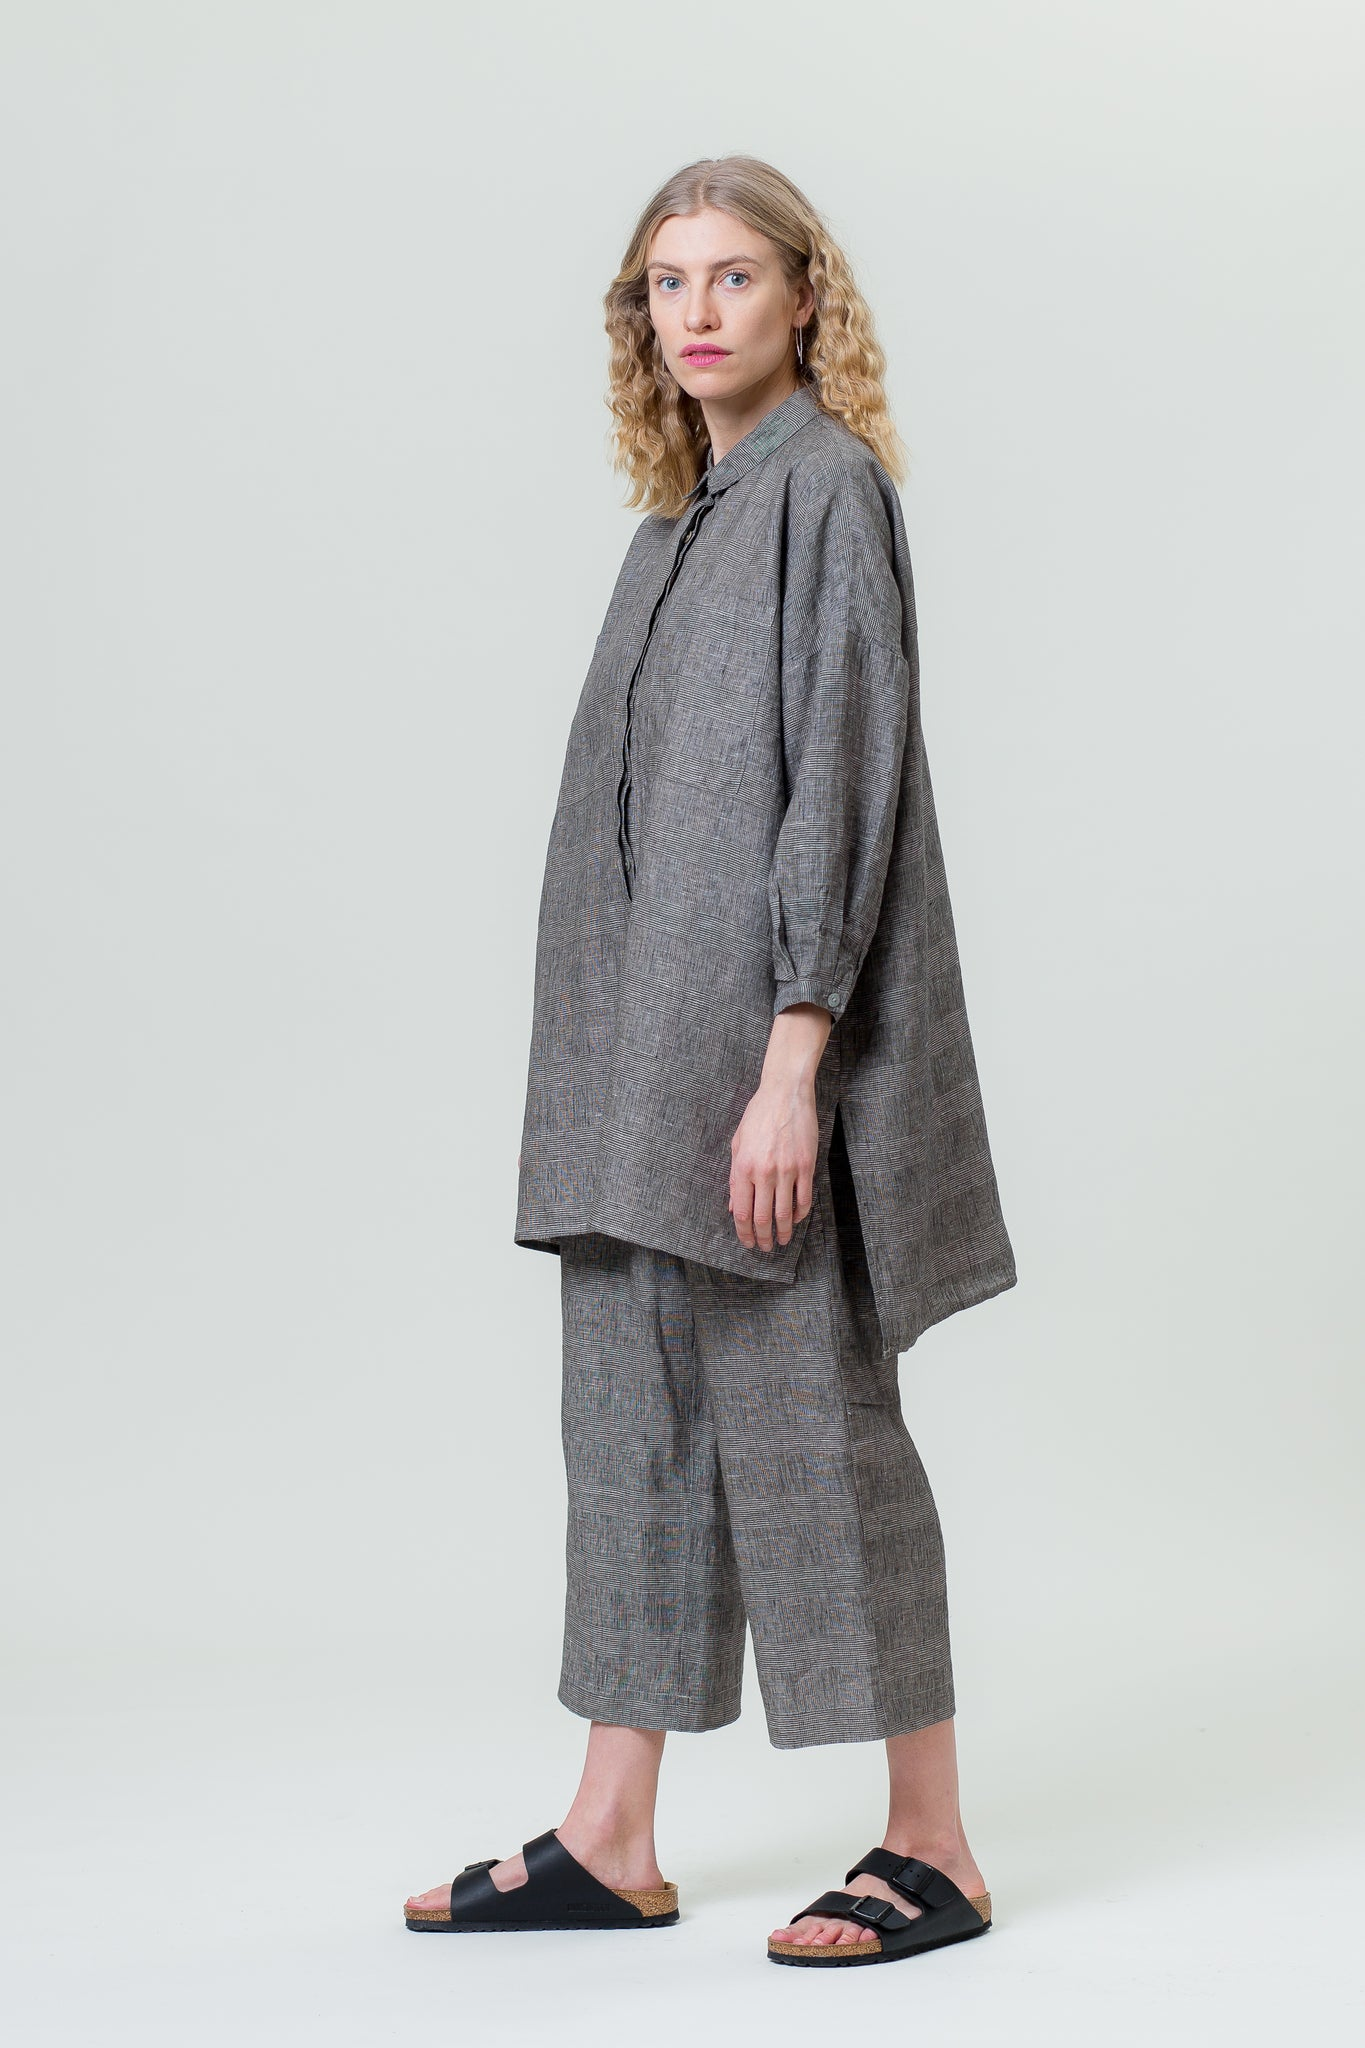 Linen Shirt VANDA graphite grey